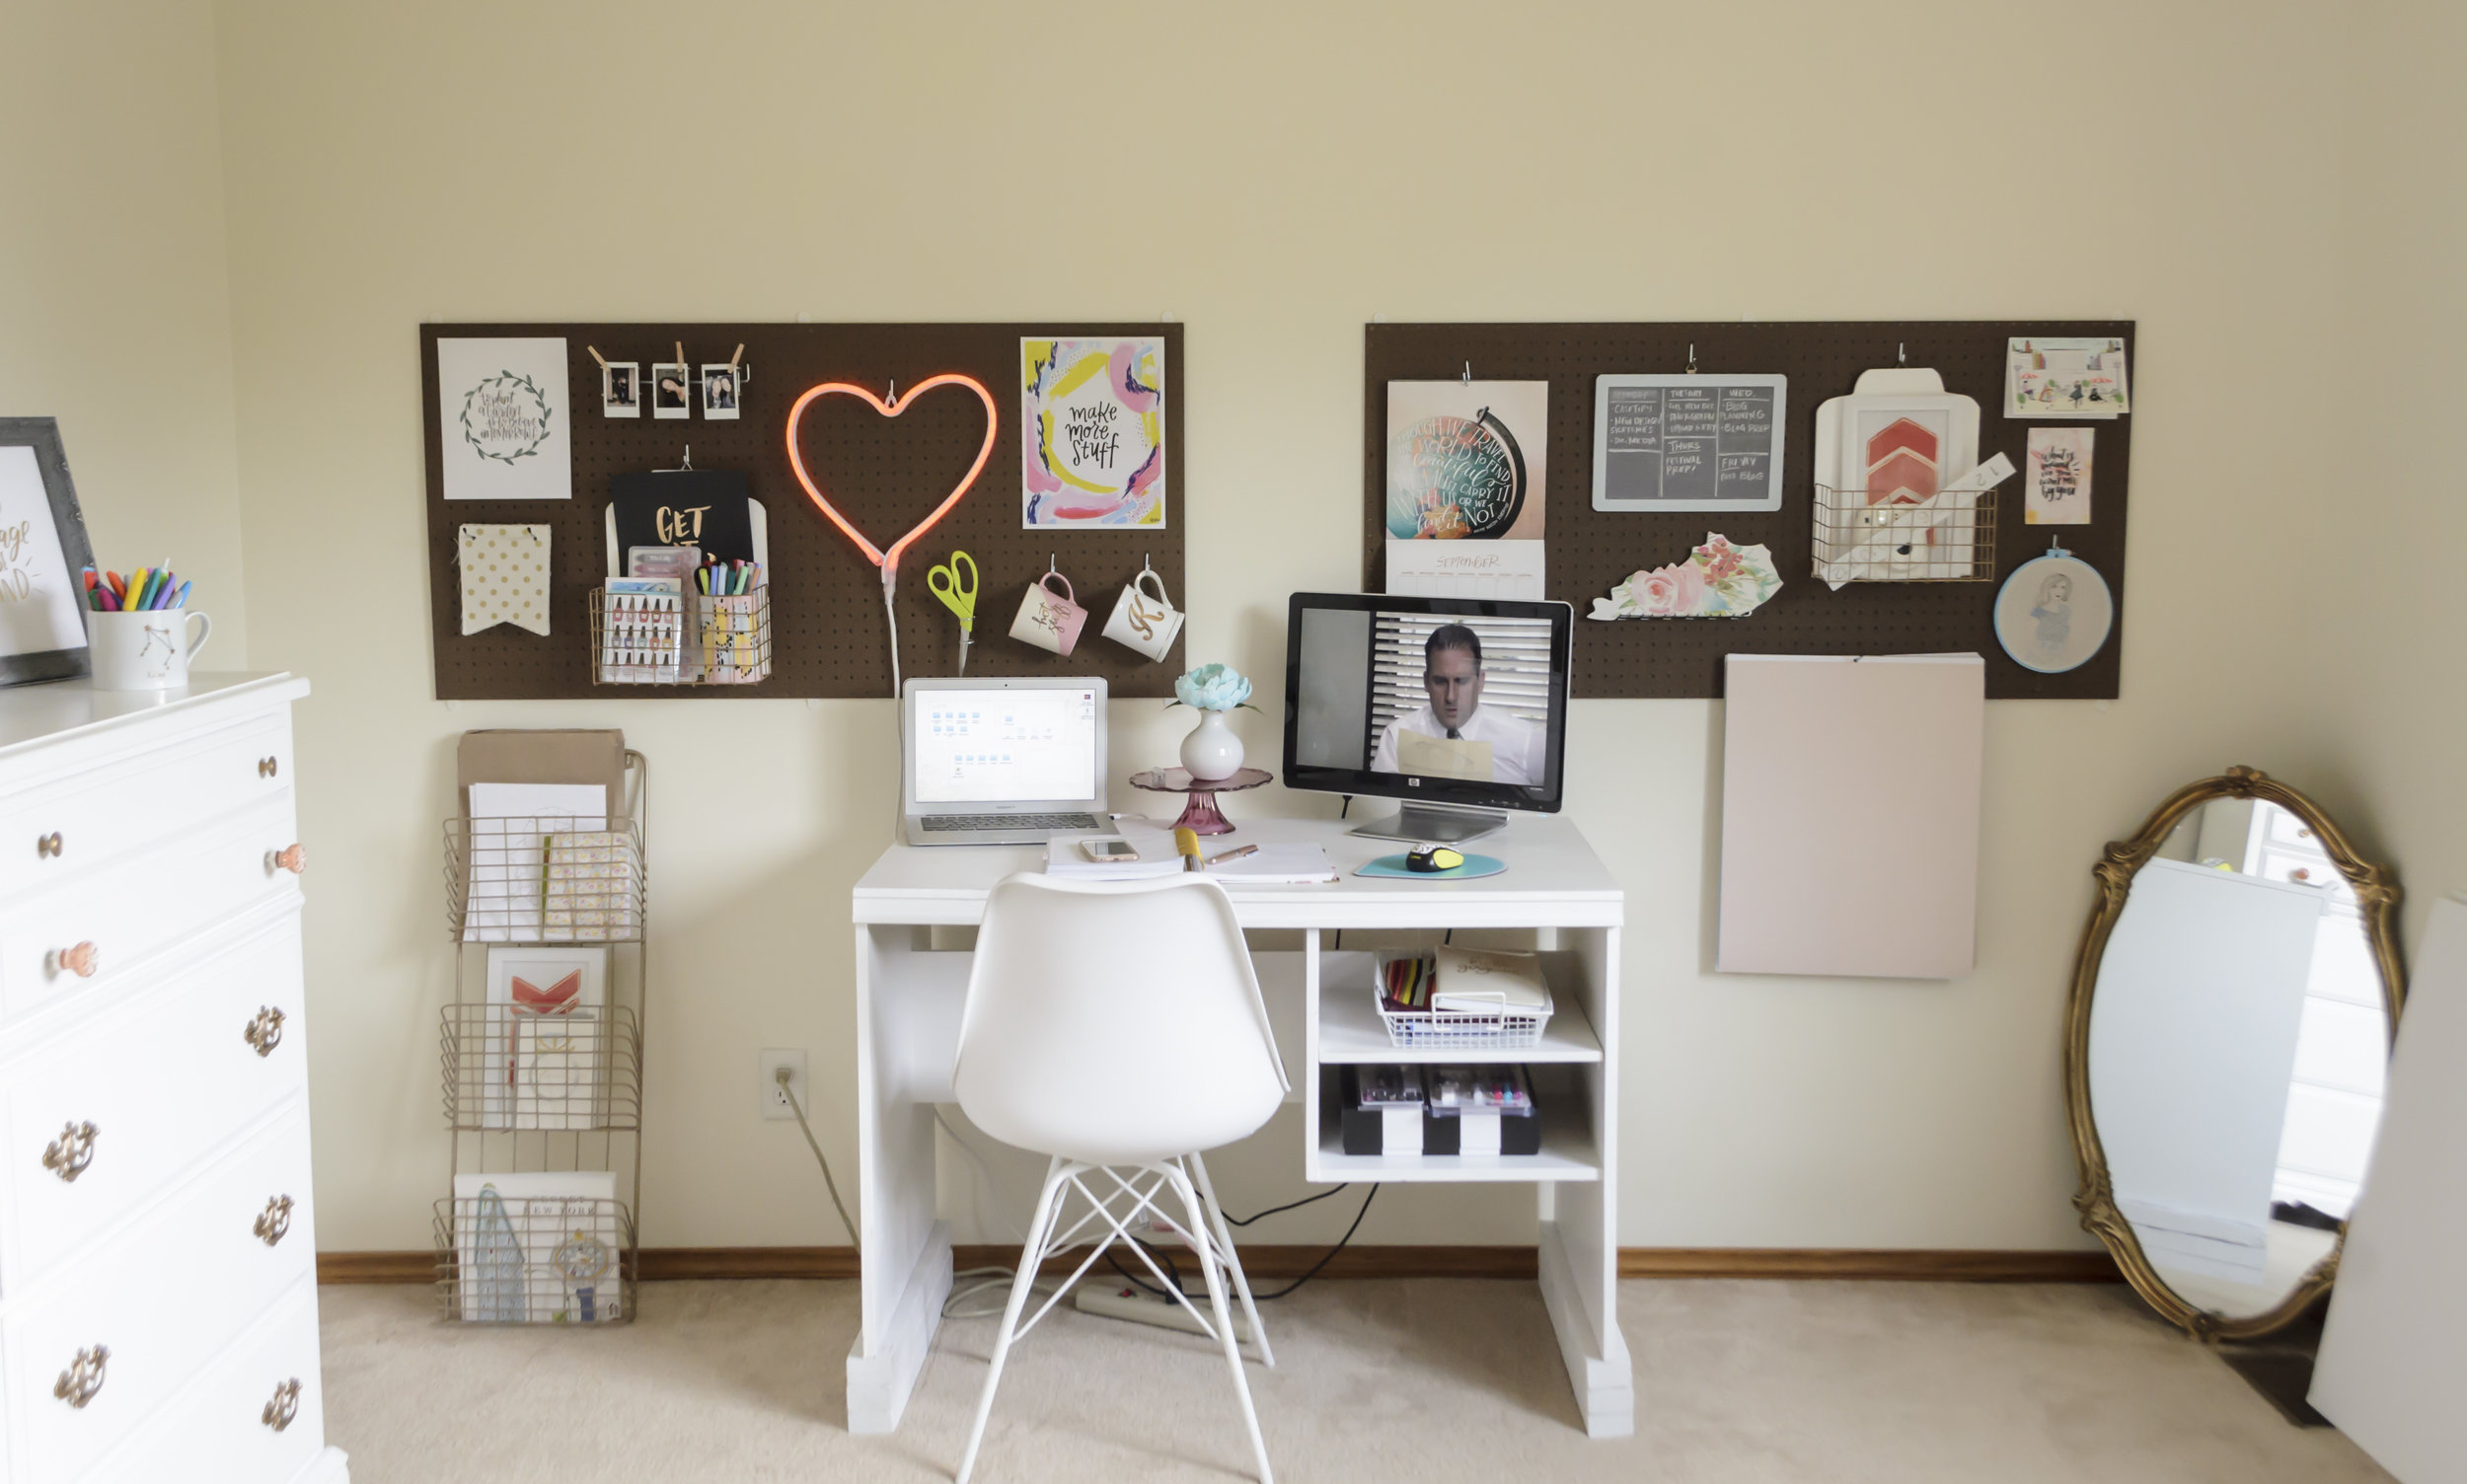 Yes, I'm watching 'The Office' while photographing and writing about my office. It seemed fitting!